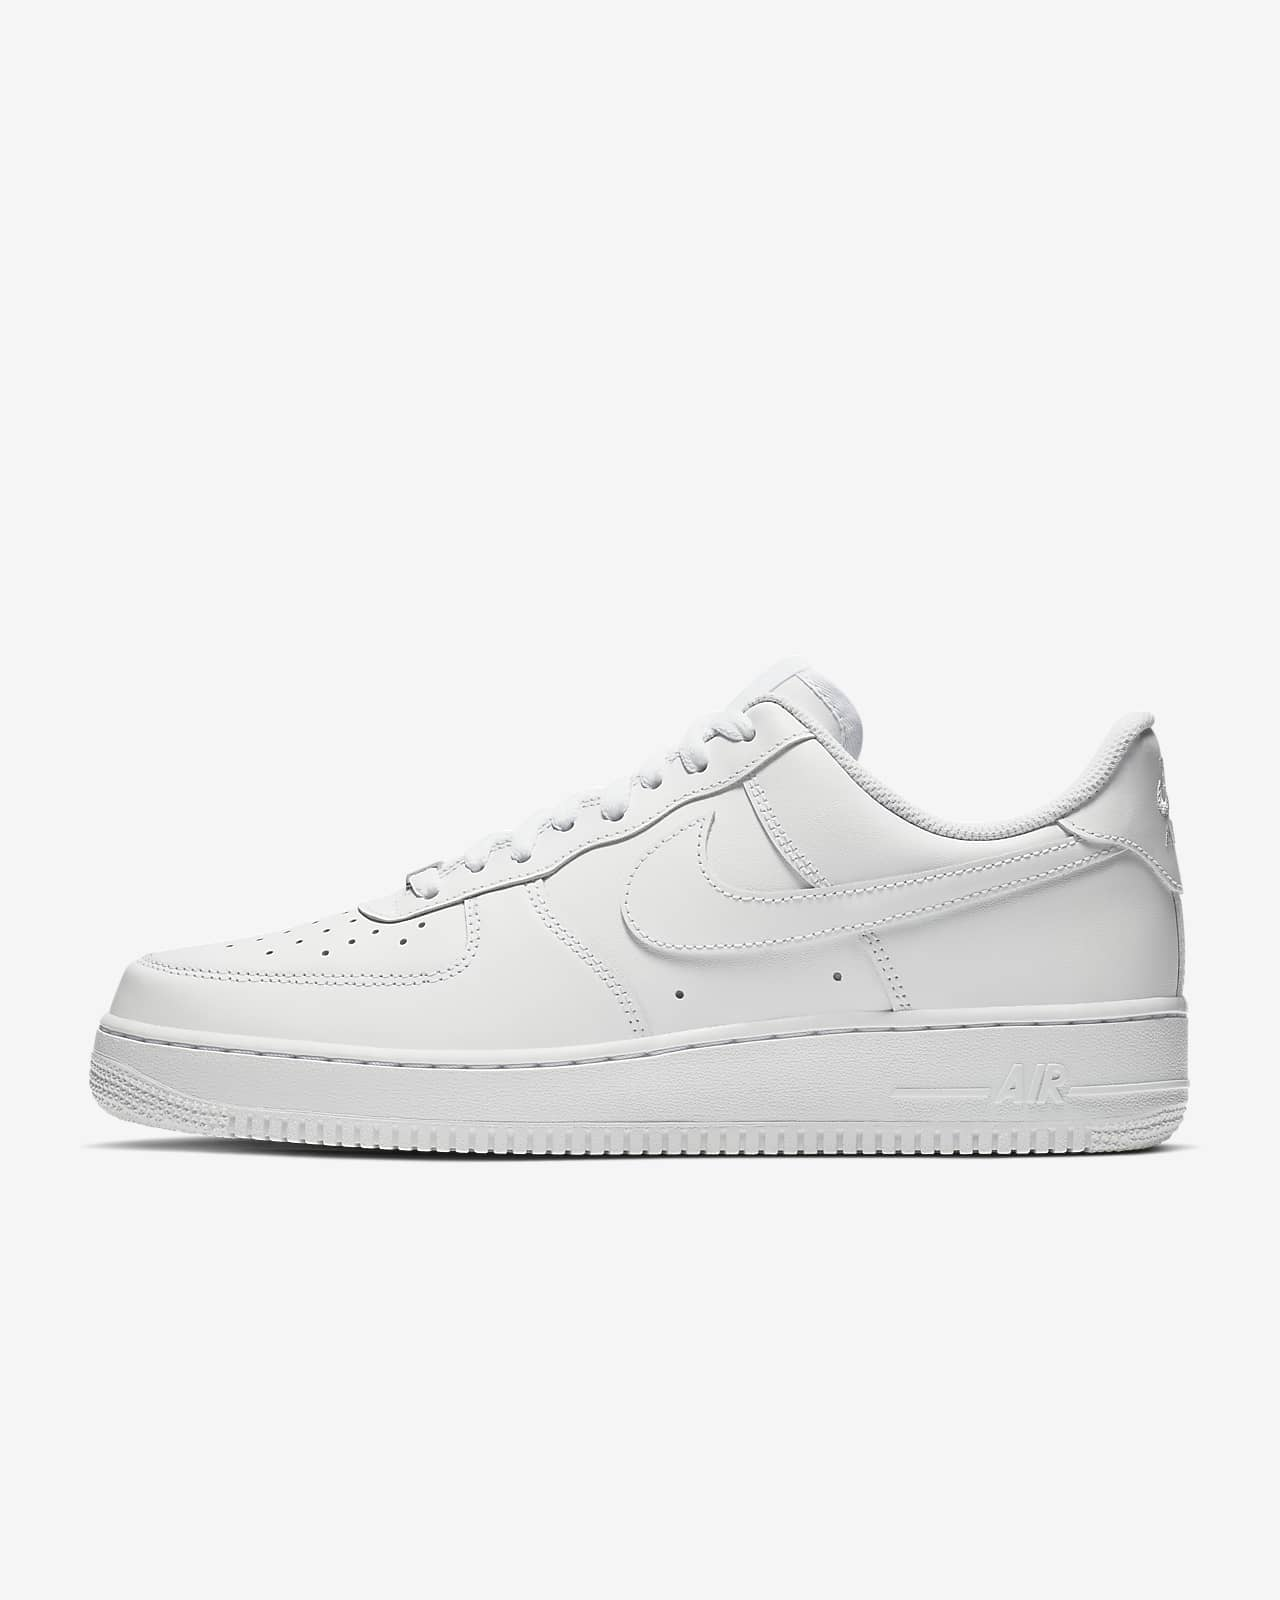 Air Force 1 Sneaker by Nike, available on nordstrom.com for $90 Hailey Baldwin Shoes Exact Product